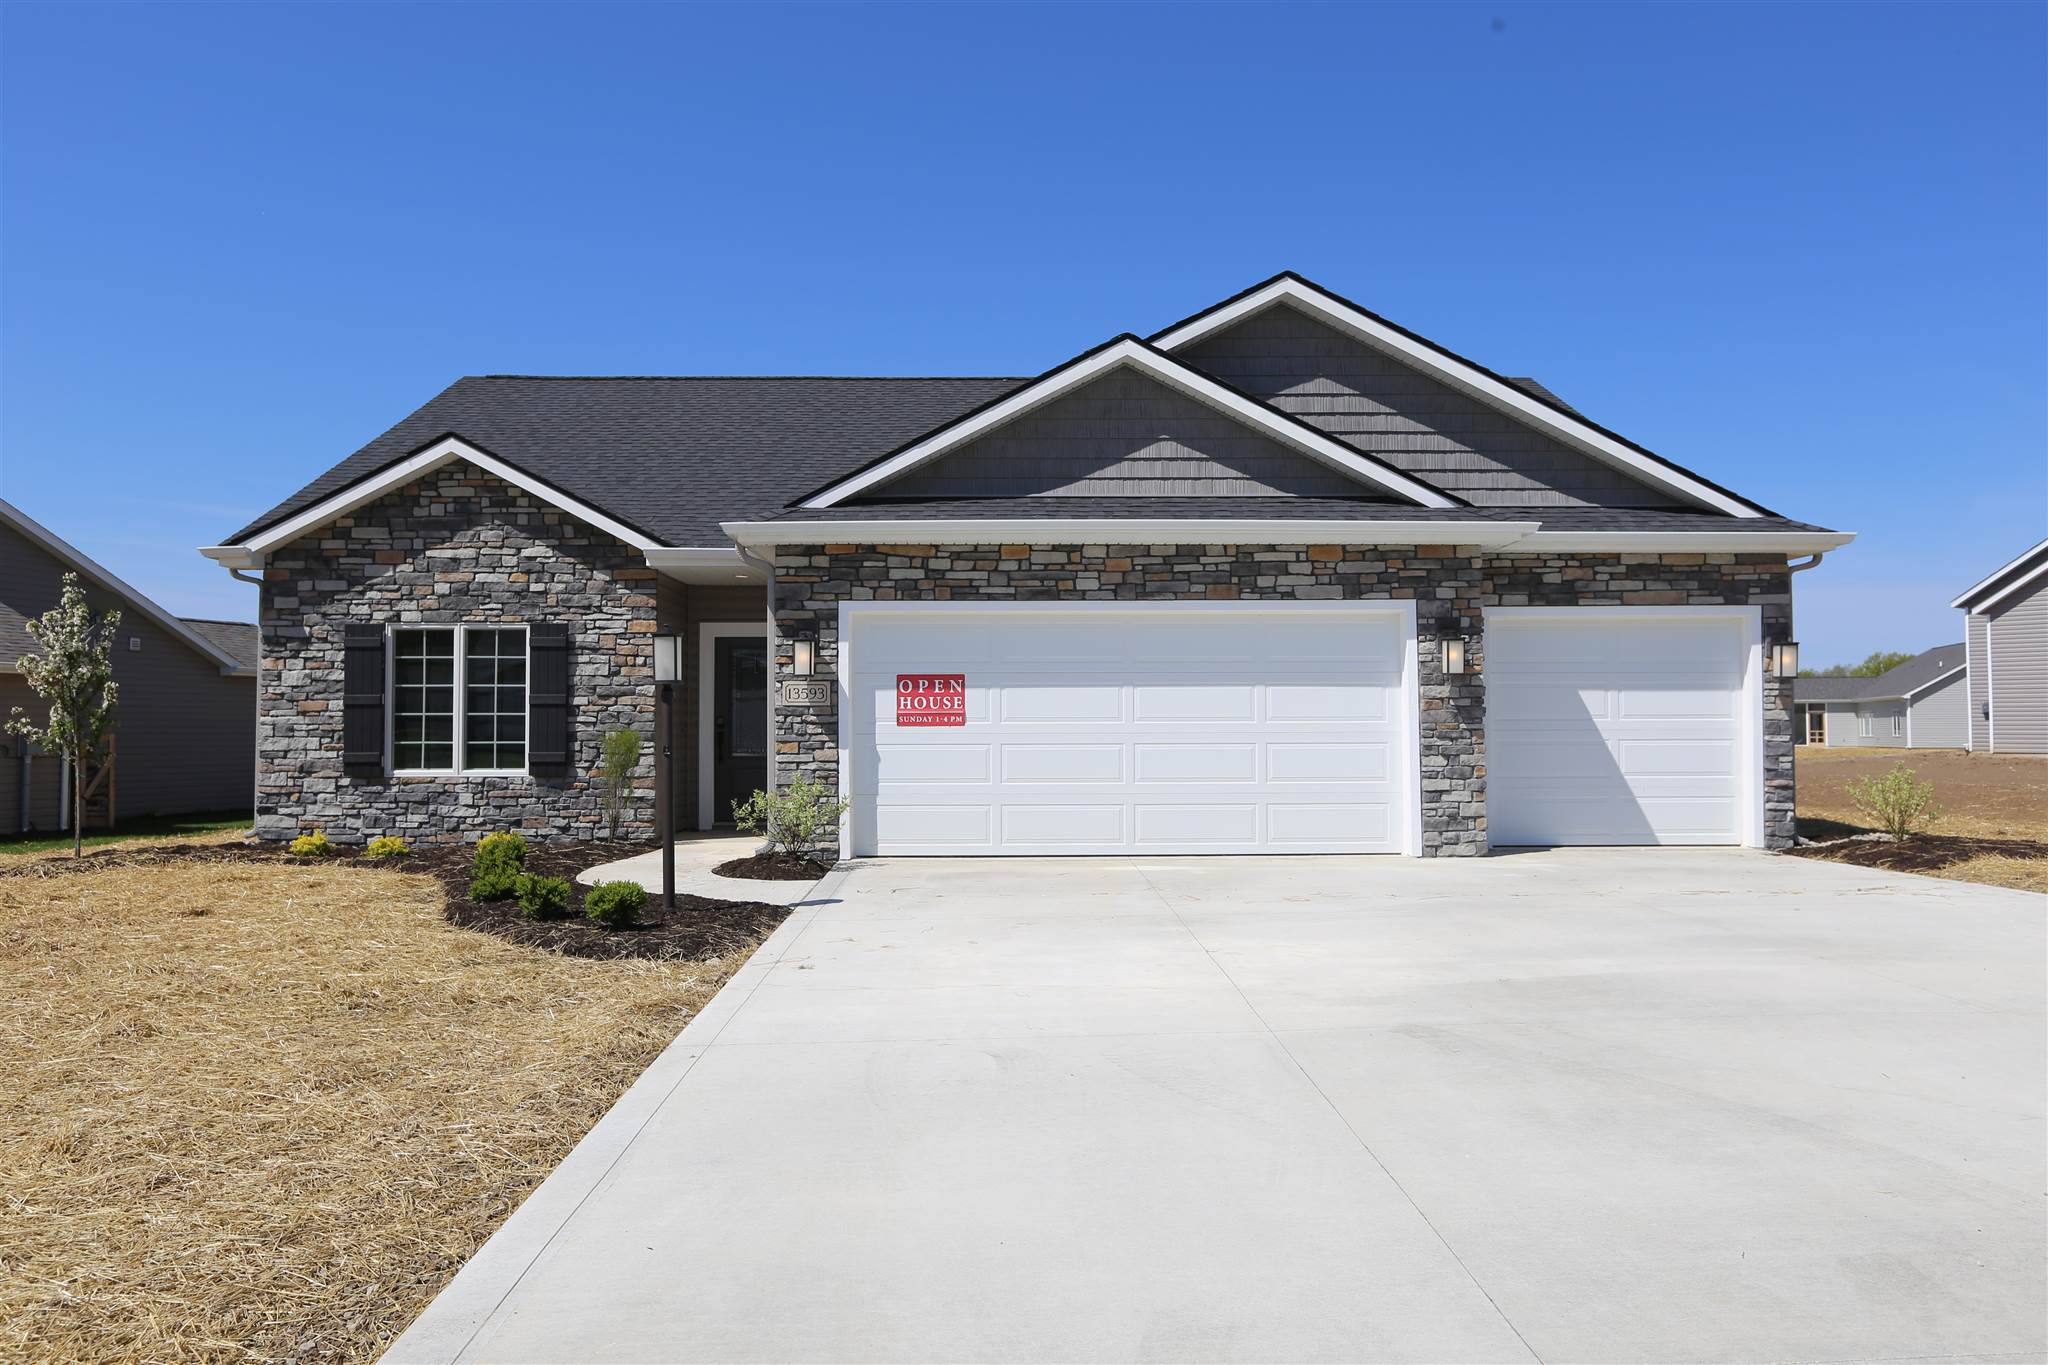 13593 Saddle Creek Lane, Grabill, IN 46741